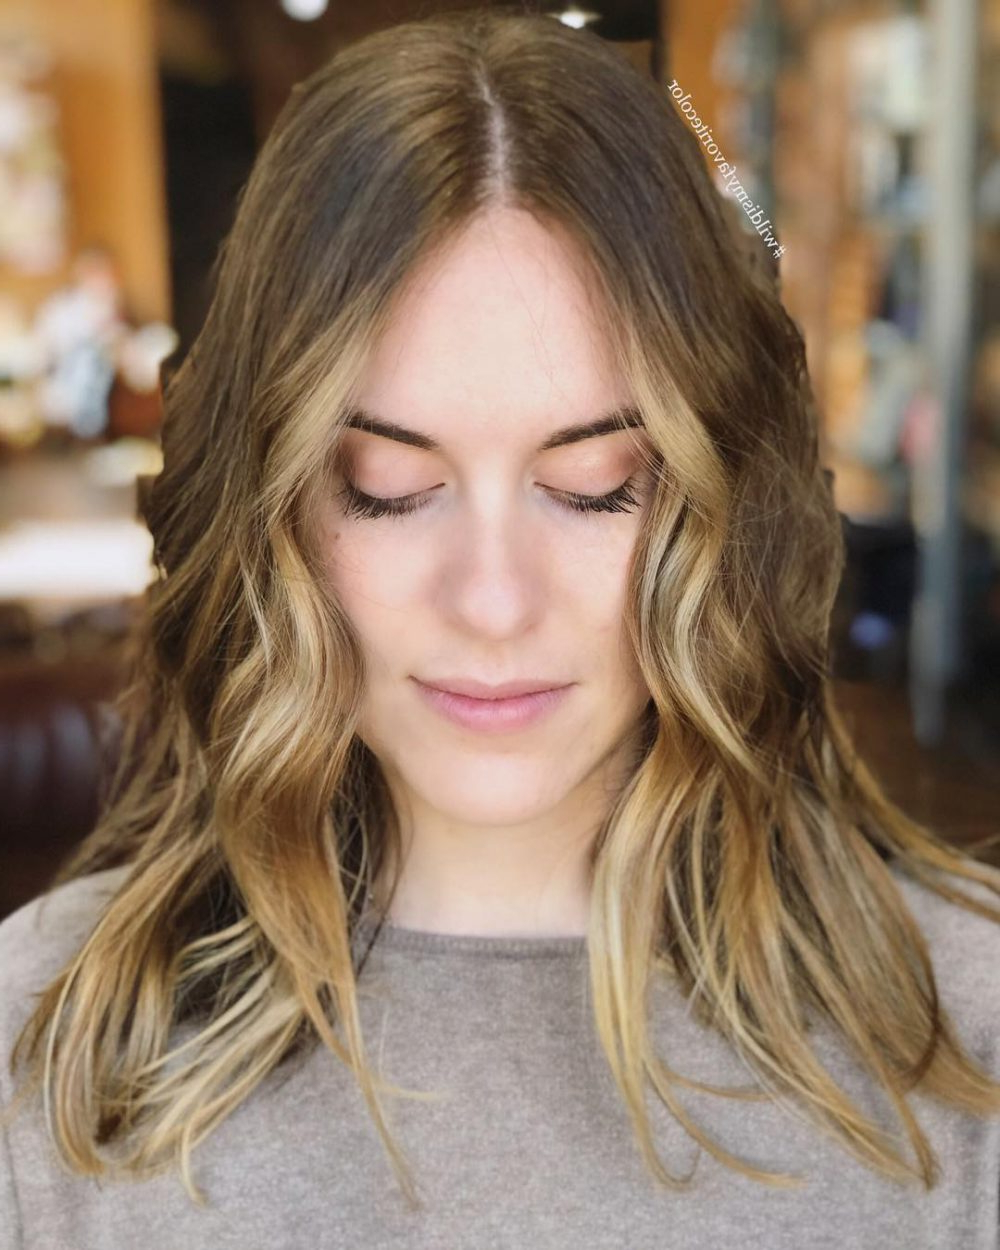 17 Flattering Medium Hairstyles For Round Faces In 2019 In Recent Women Medium Haircuts For Round Faces (View 2 of 20)